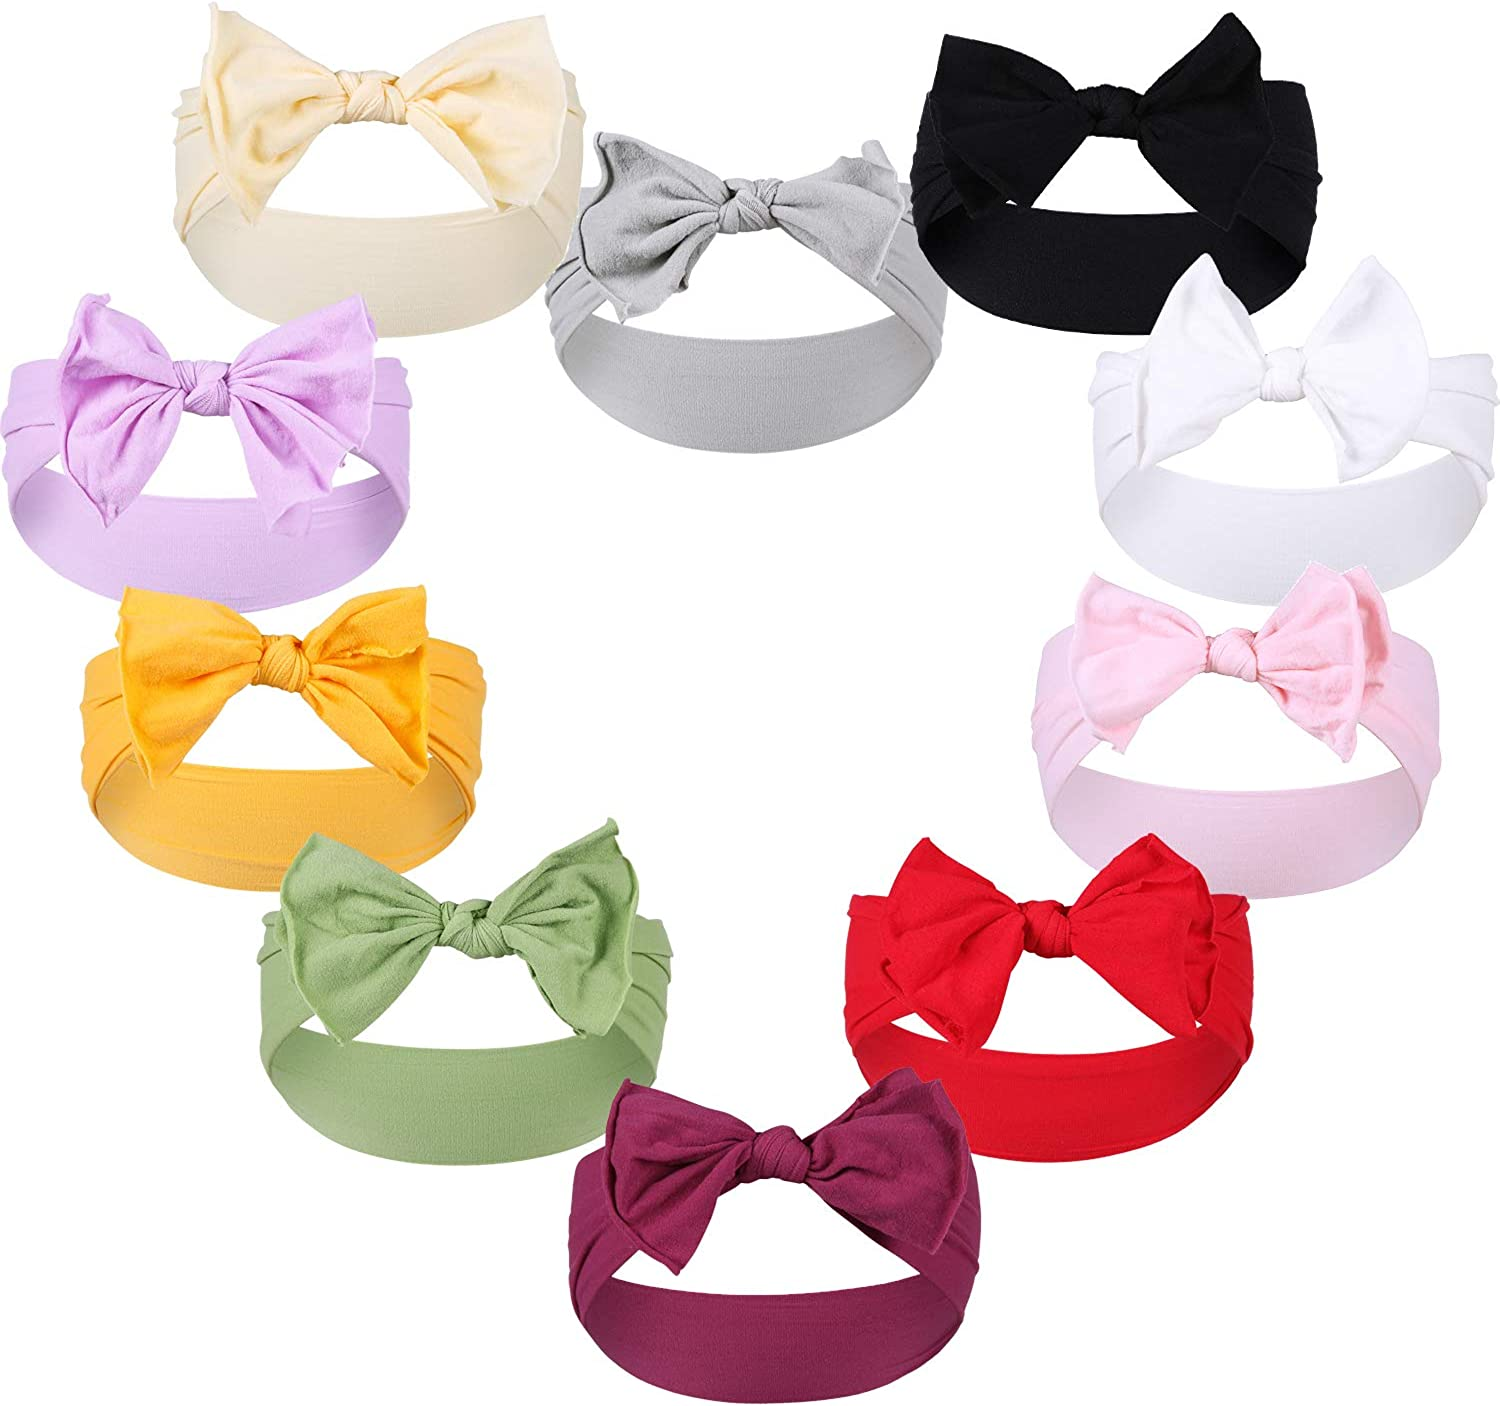 Gacimy Baby Girl Headbands Knotted Hair Bows Nylon Elastic Turban Headwrap Accessories